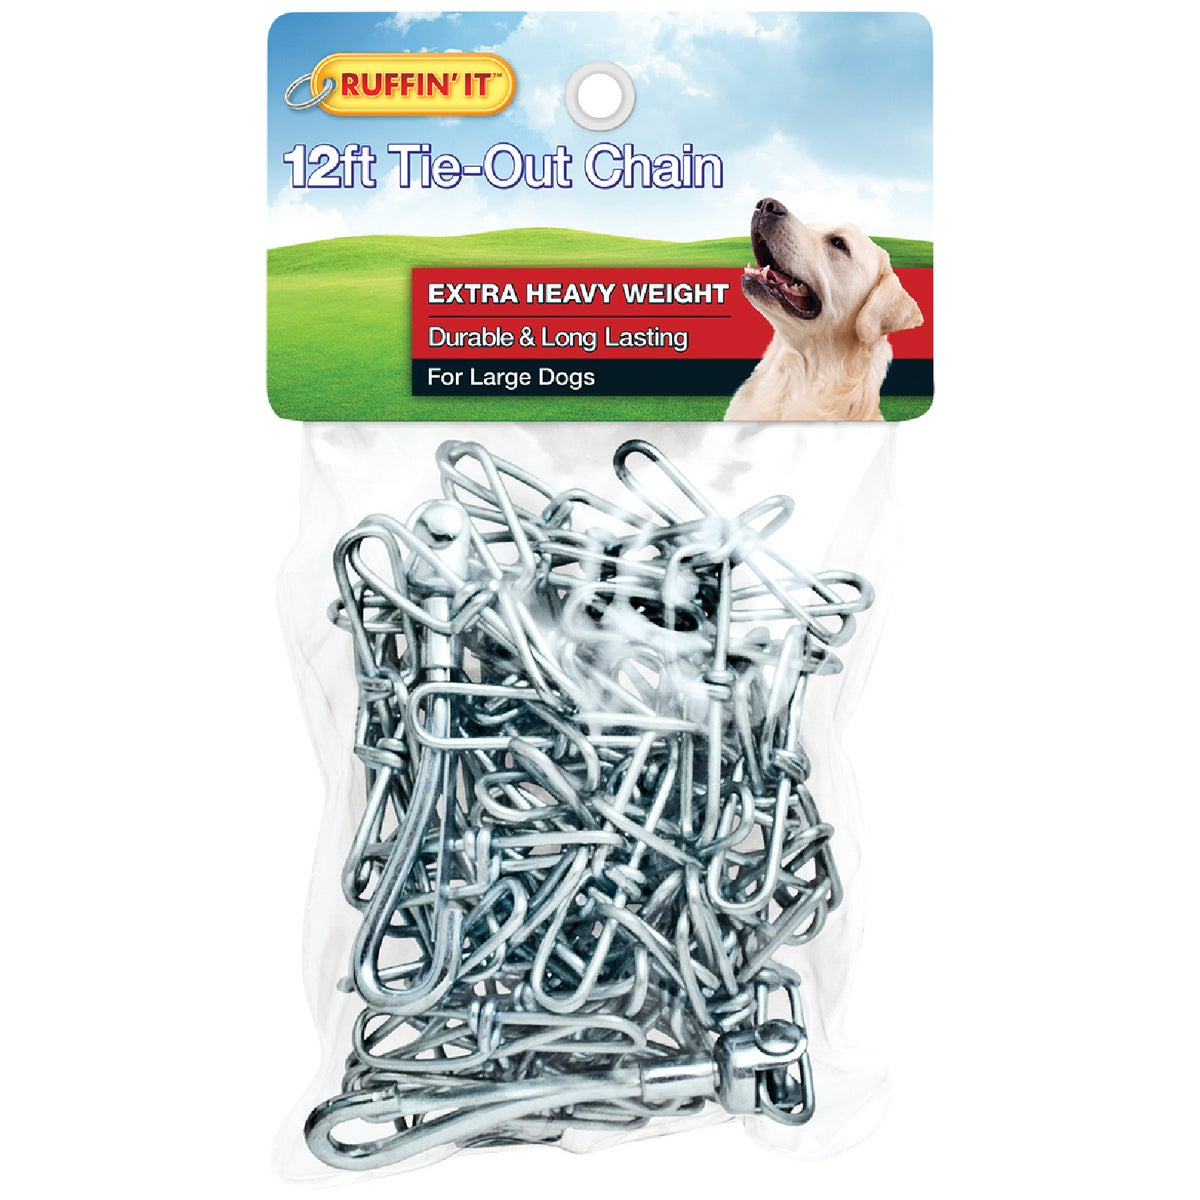 Westminster Pet 12' HVY TIE-OUT CHAIN 30120